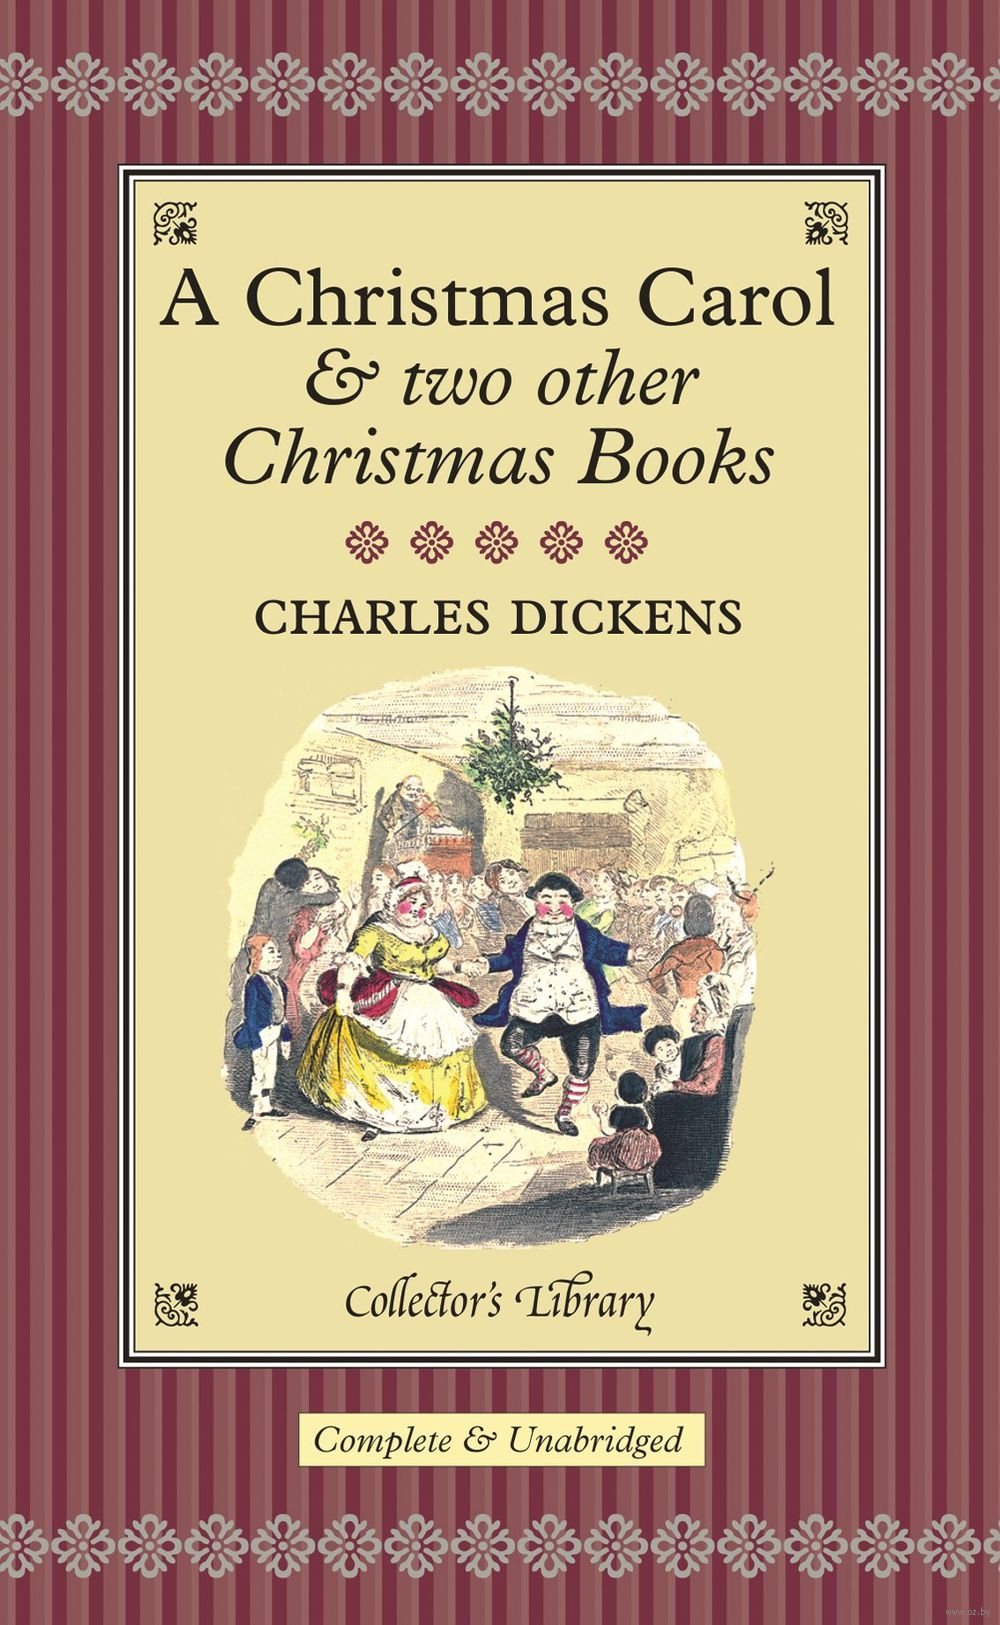 book analysis a christmas carol A christmas carol written by charles dickens was published as a novella in december 19th of 1843 it was an instant success and and has never been out of print.